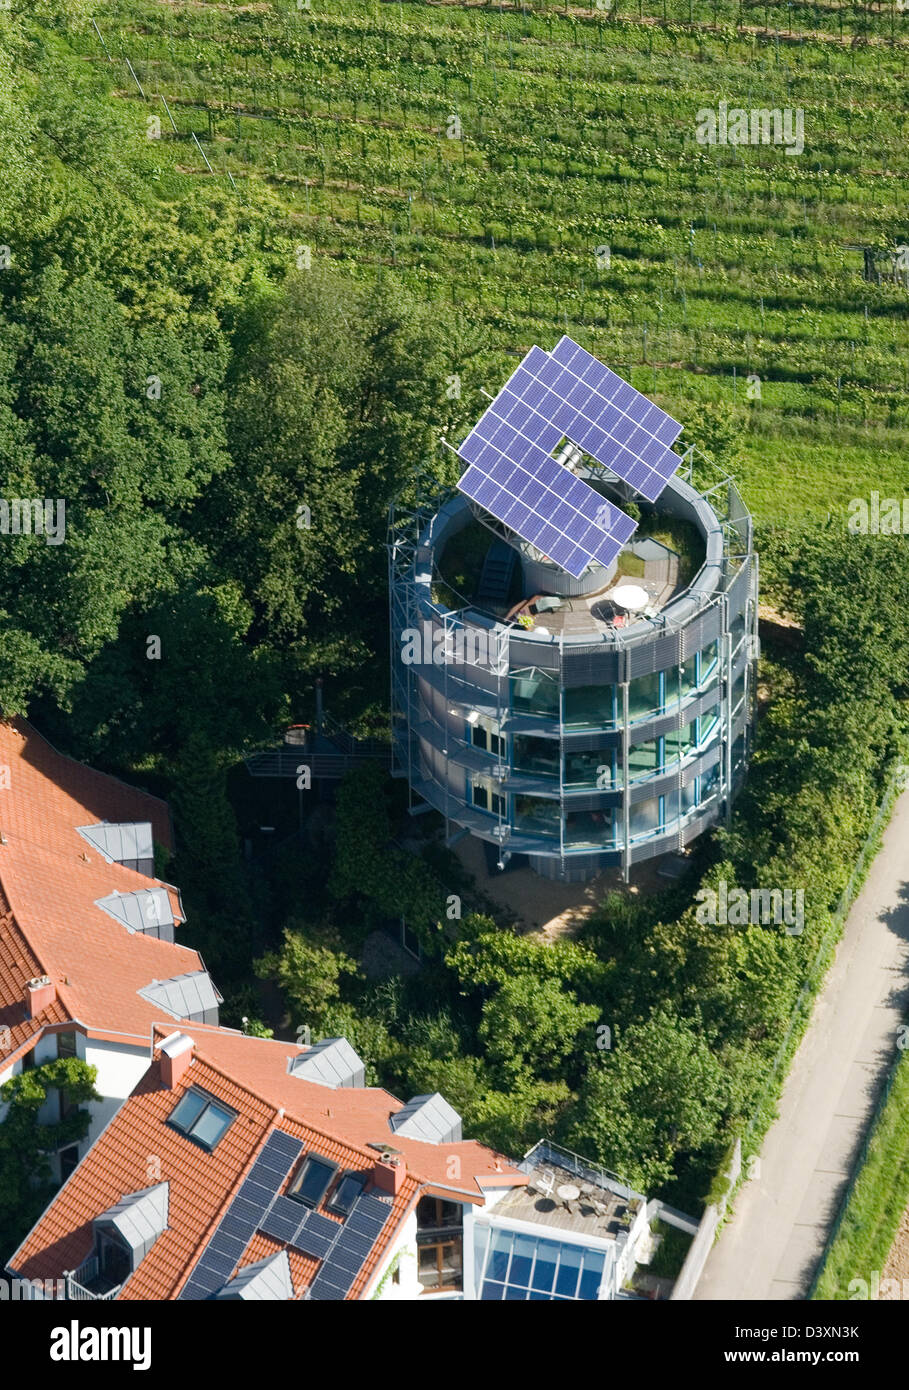 Freiburg Germany Heliotrope The Architect Rolf Disch In